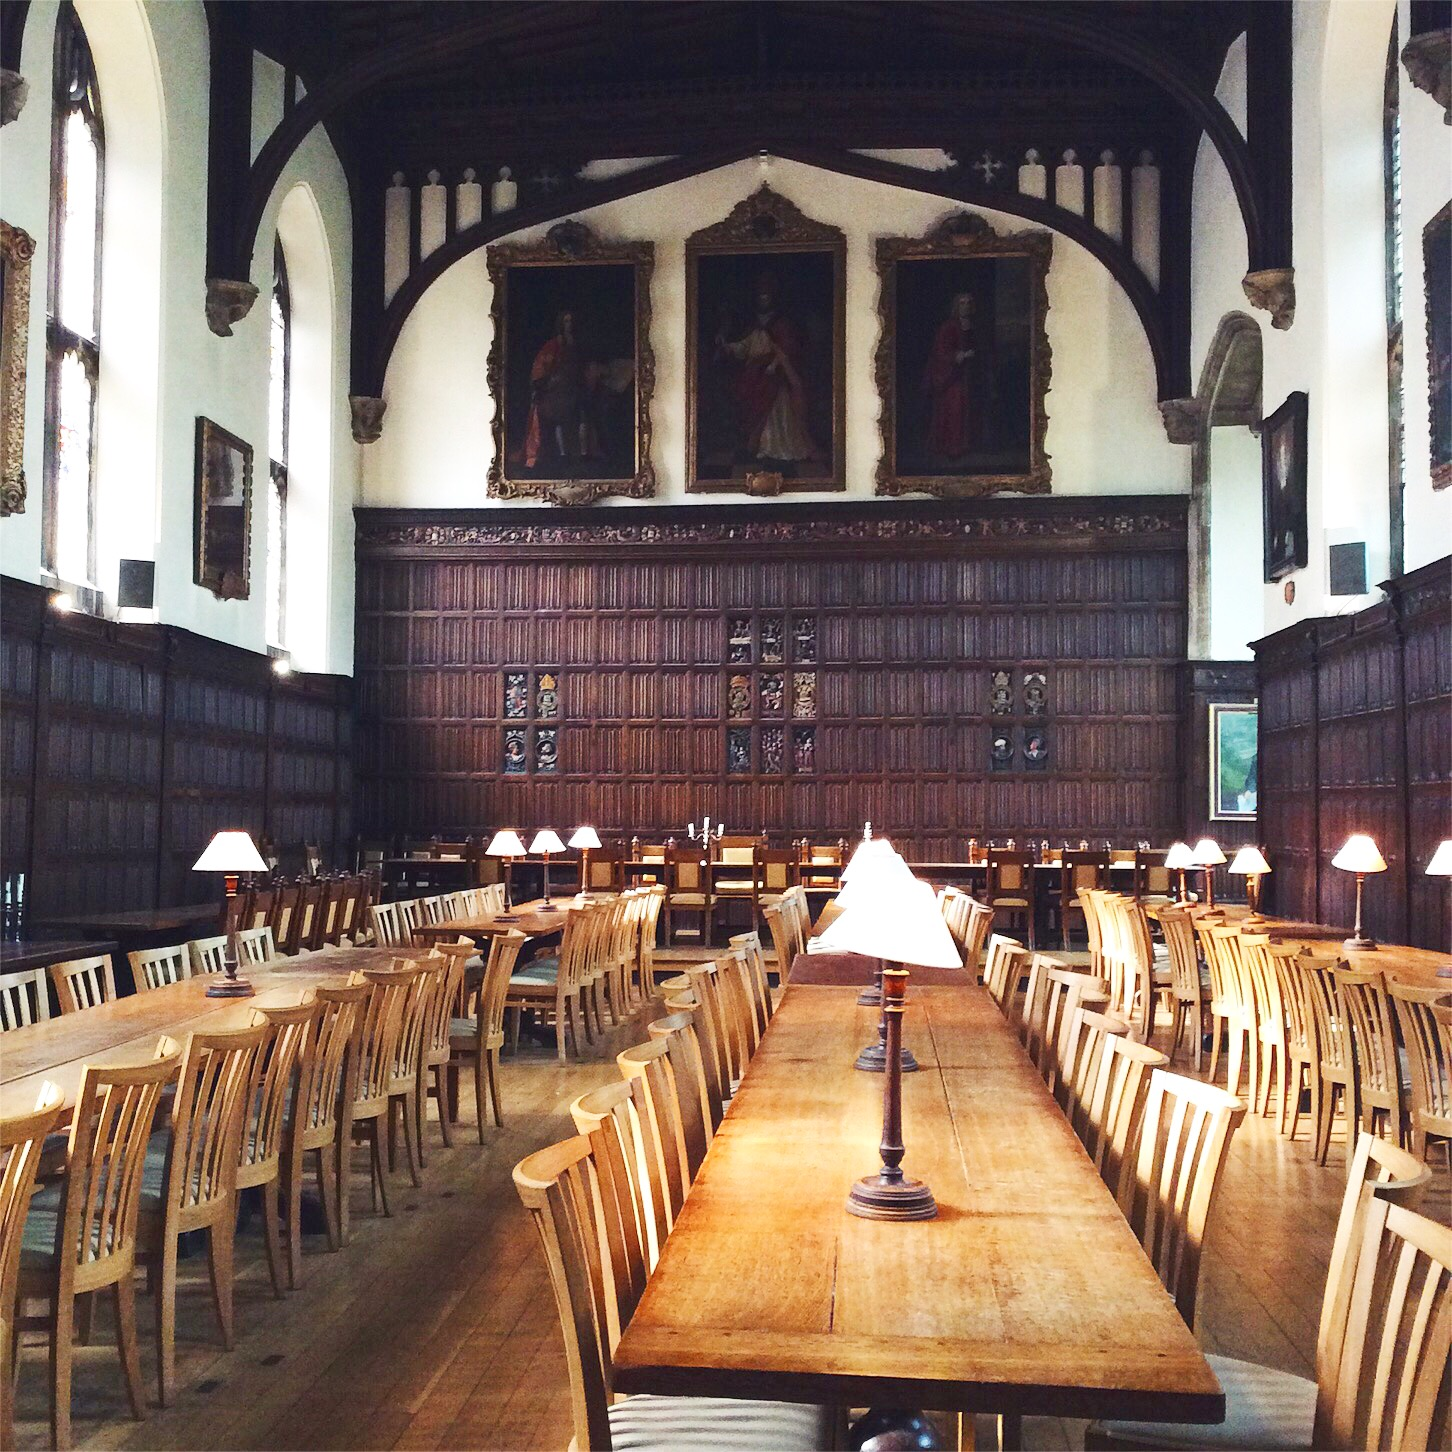 the dining hall at Magdalen college, Oxford